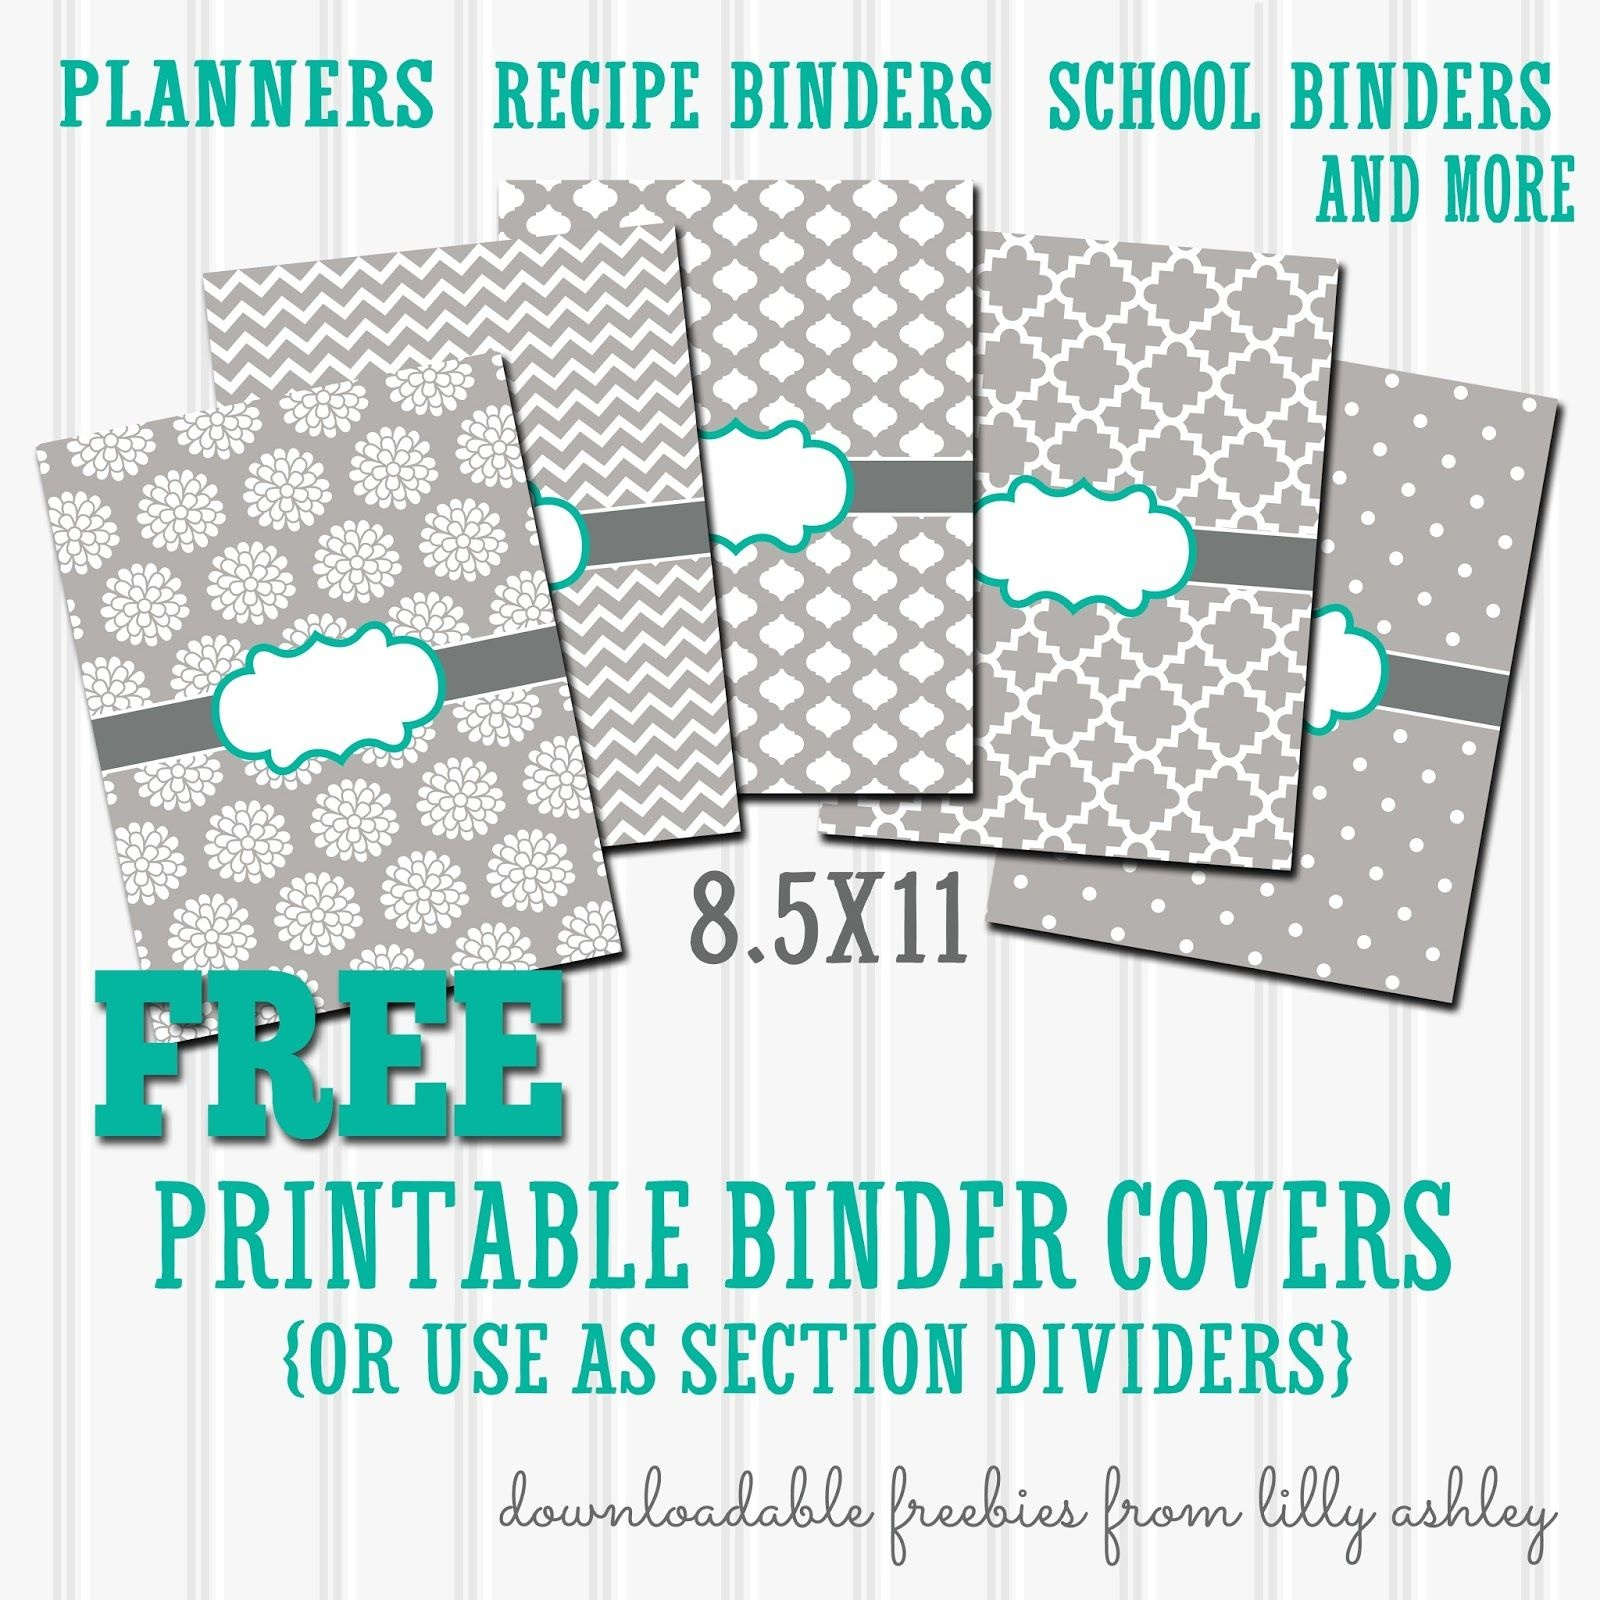 Free Binder Covers Printable Set | Preschool | Teacher Binder Covers - Free Editable Printable Binder Covers And Spines